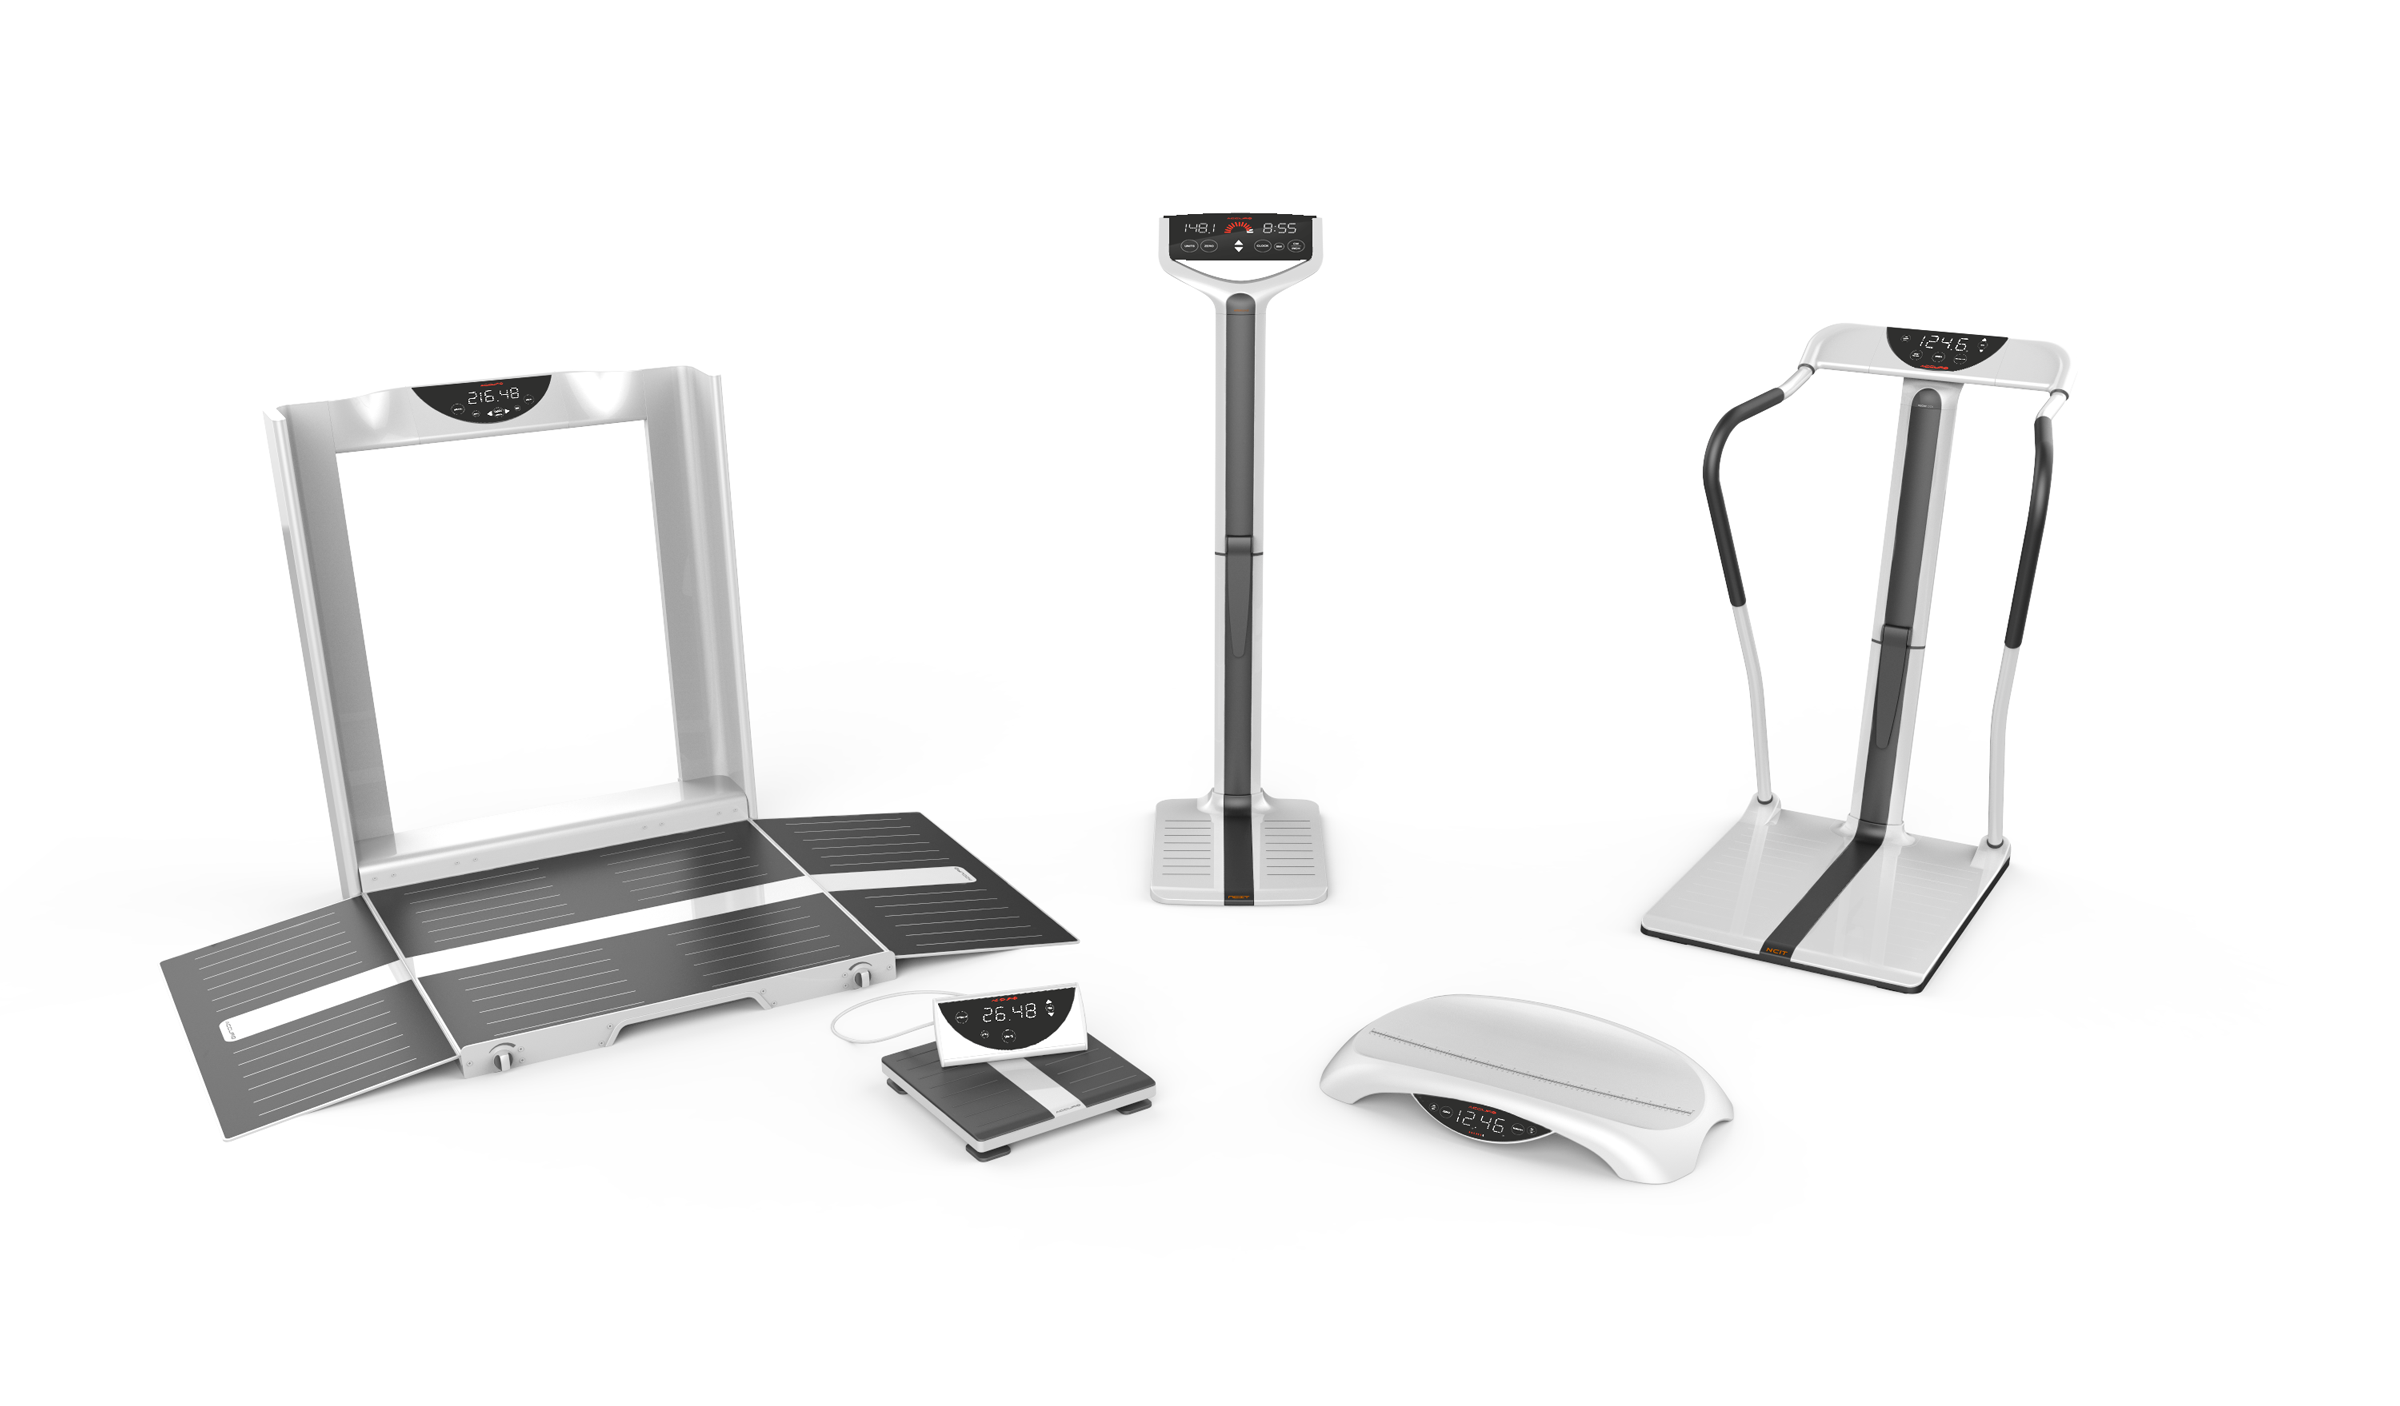 high quality render of the NCIT Digital Medical Scales lineup